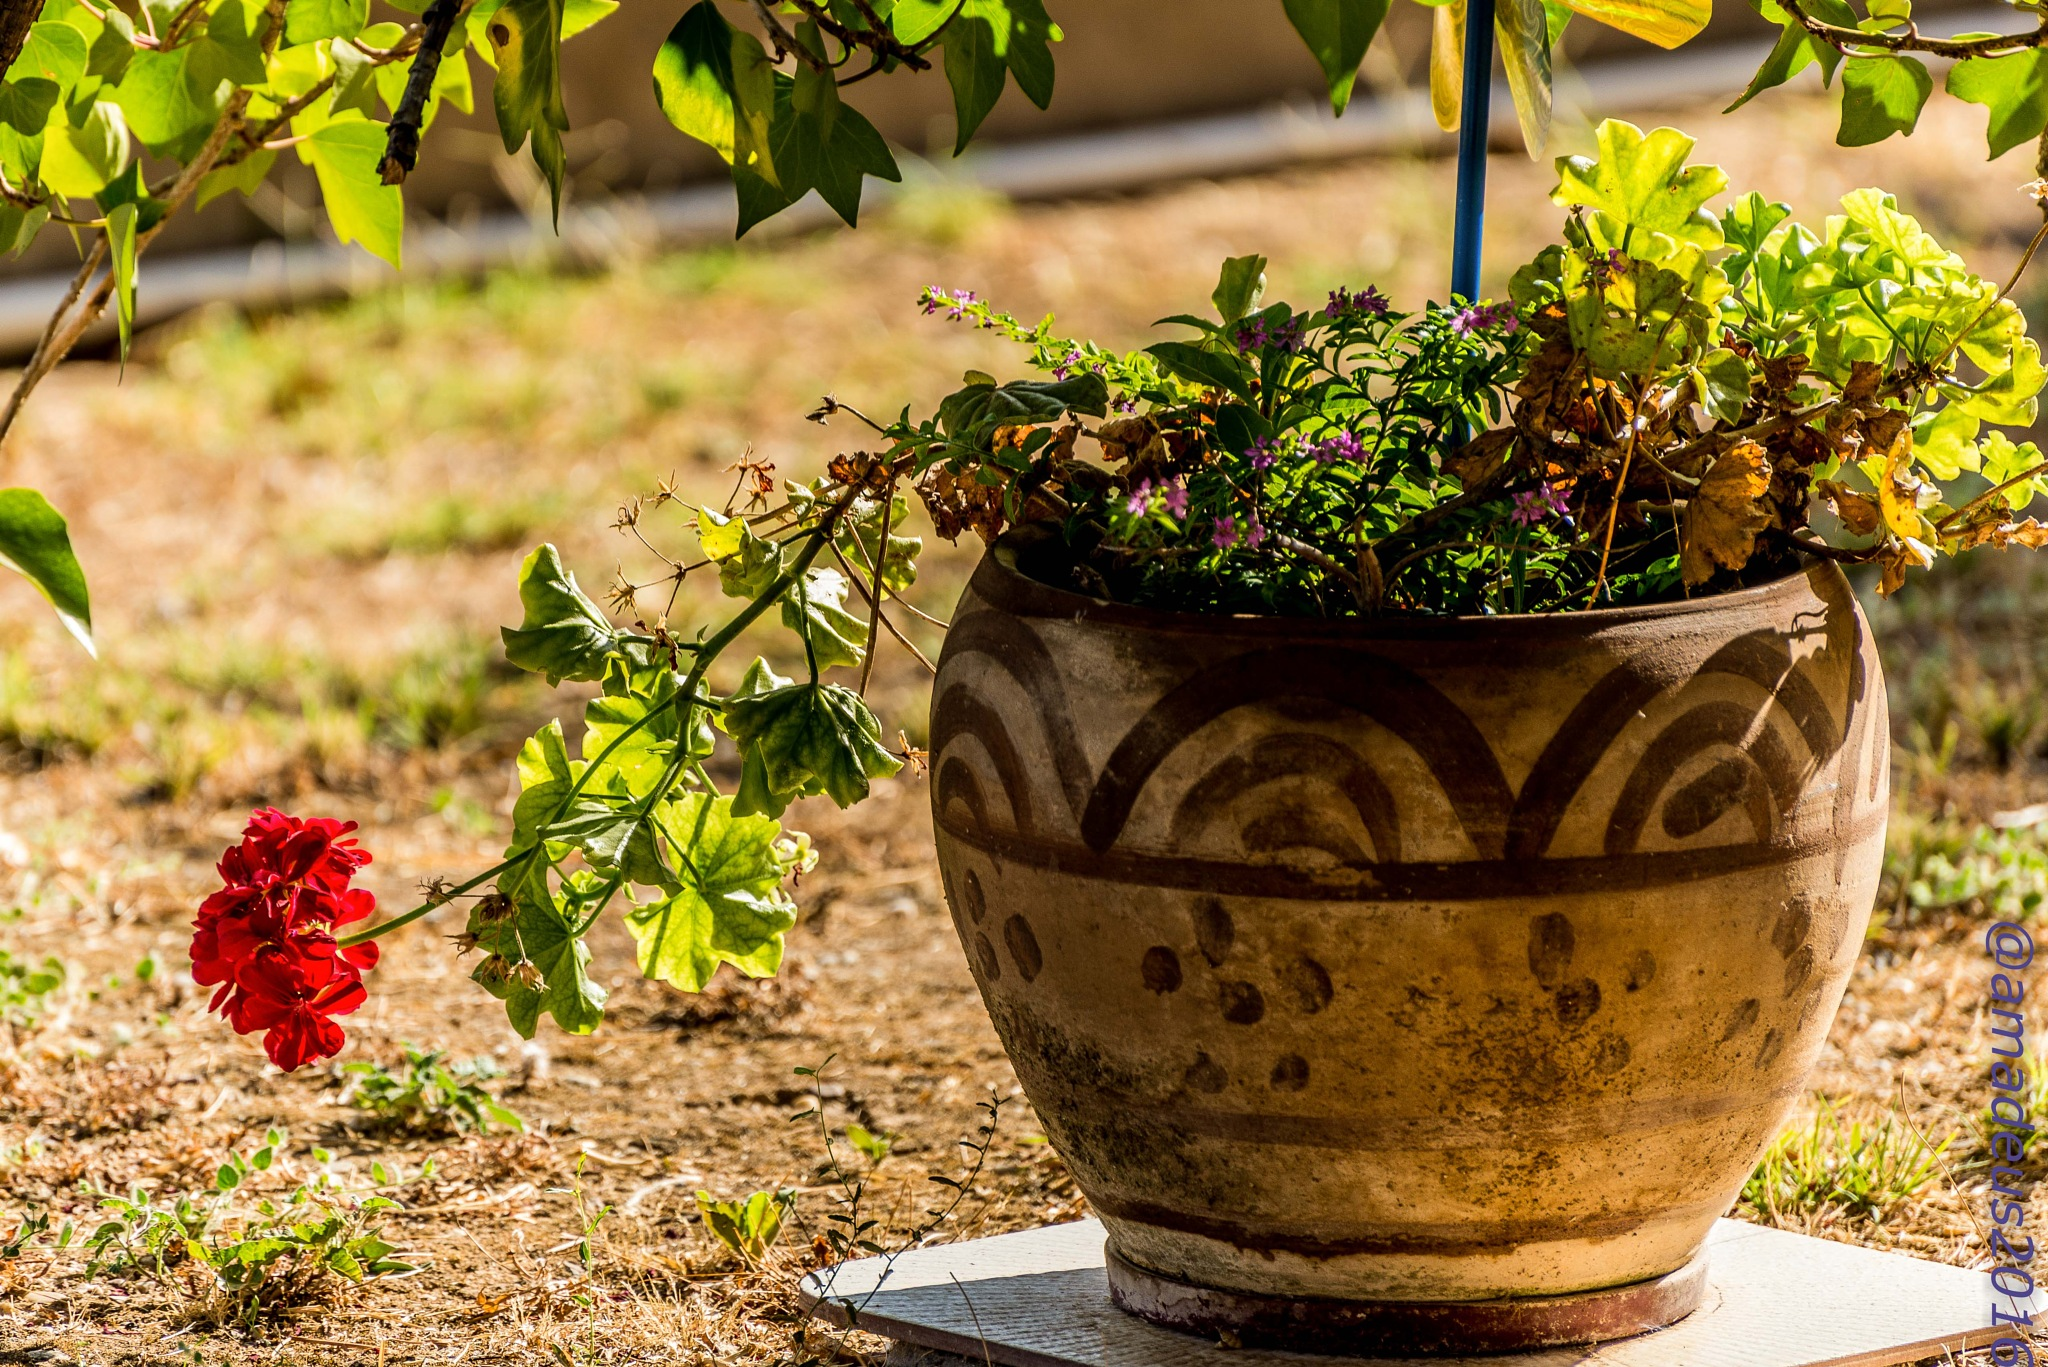 Potted plant by Amadeo Meg